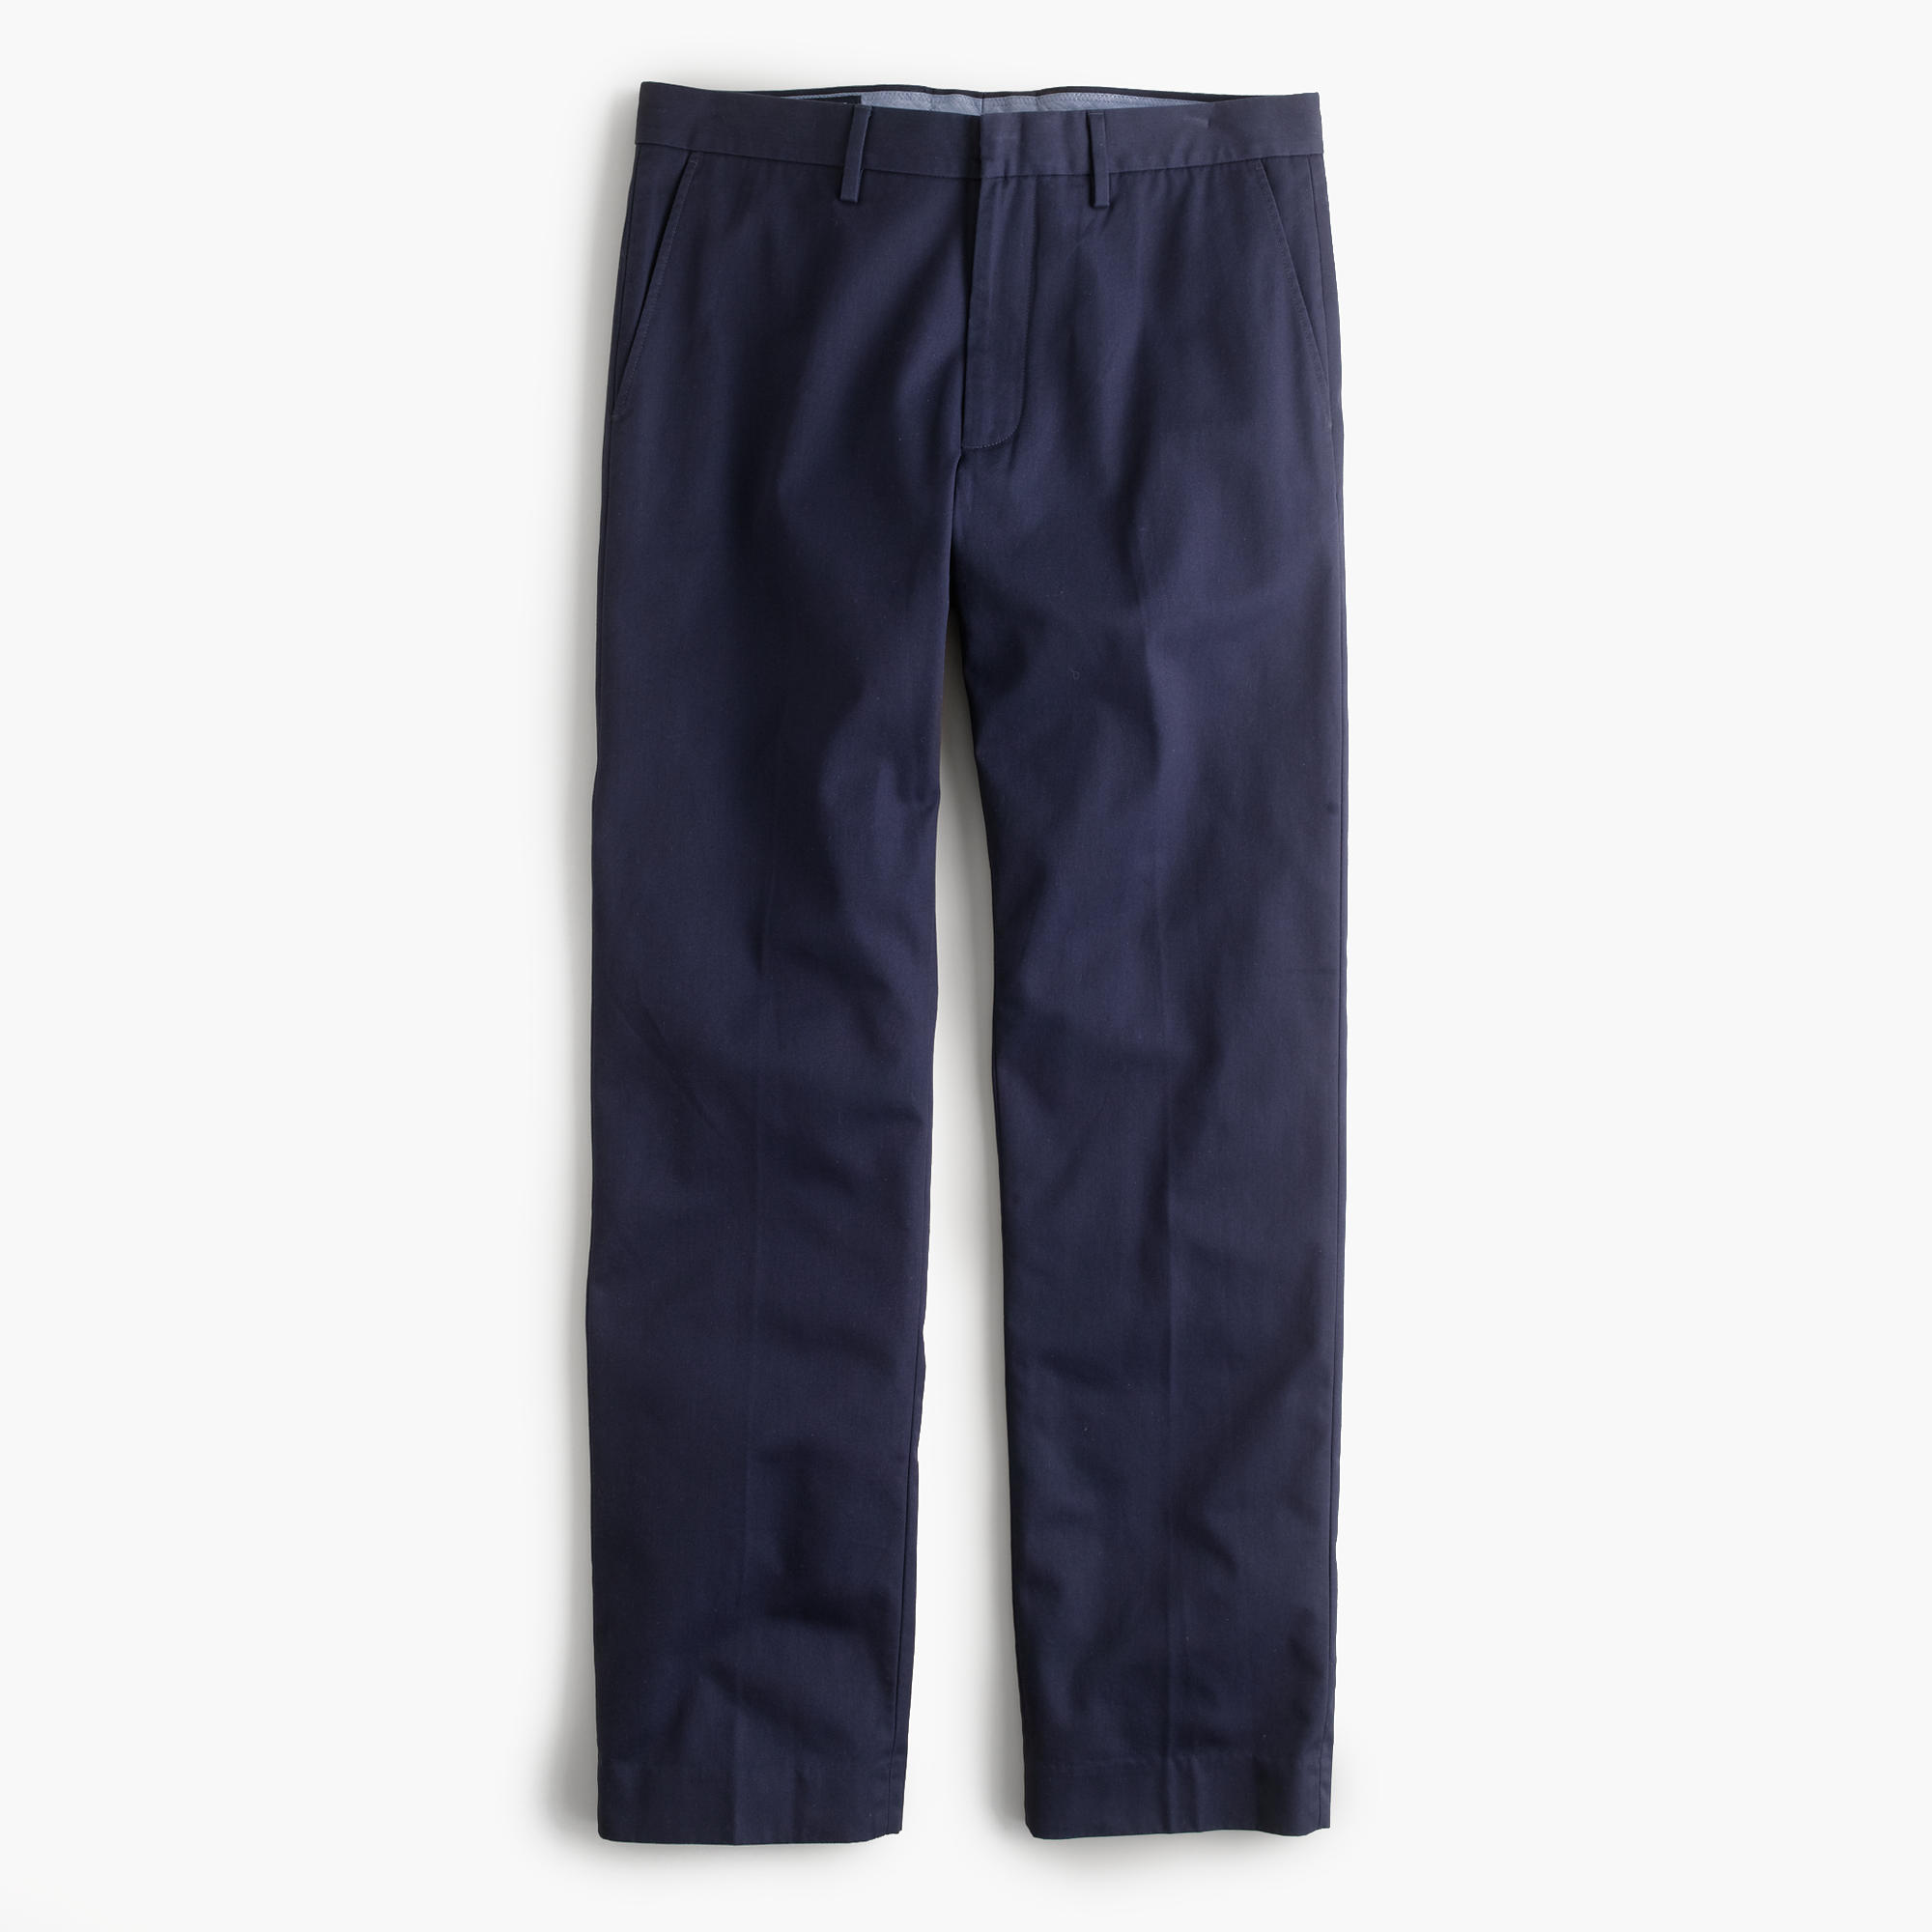 Bowery Slim Pant In Cotton Twill : Men's Chinos | J.Crew